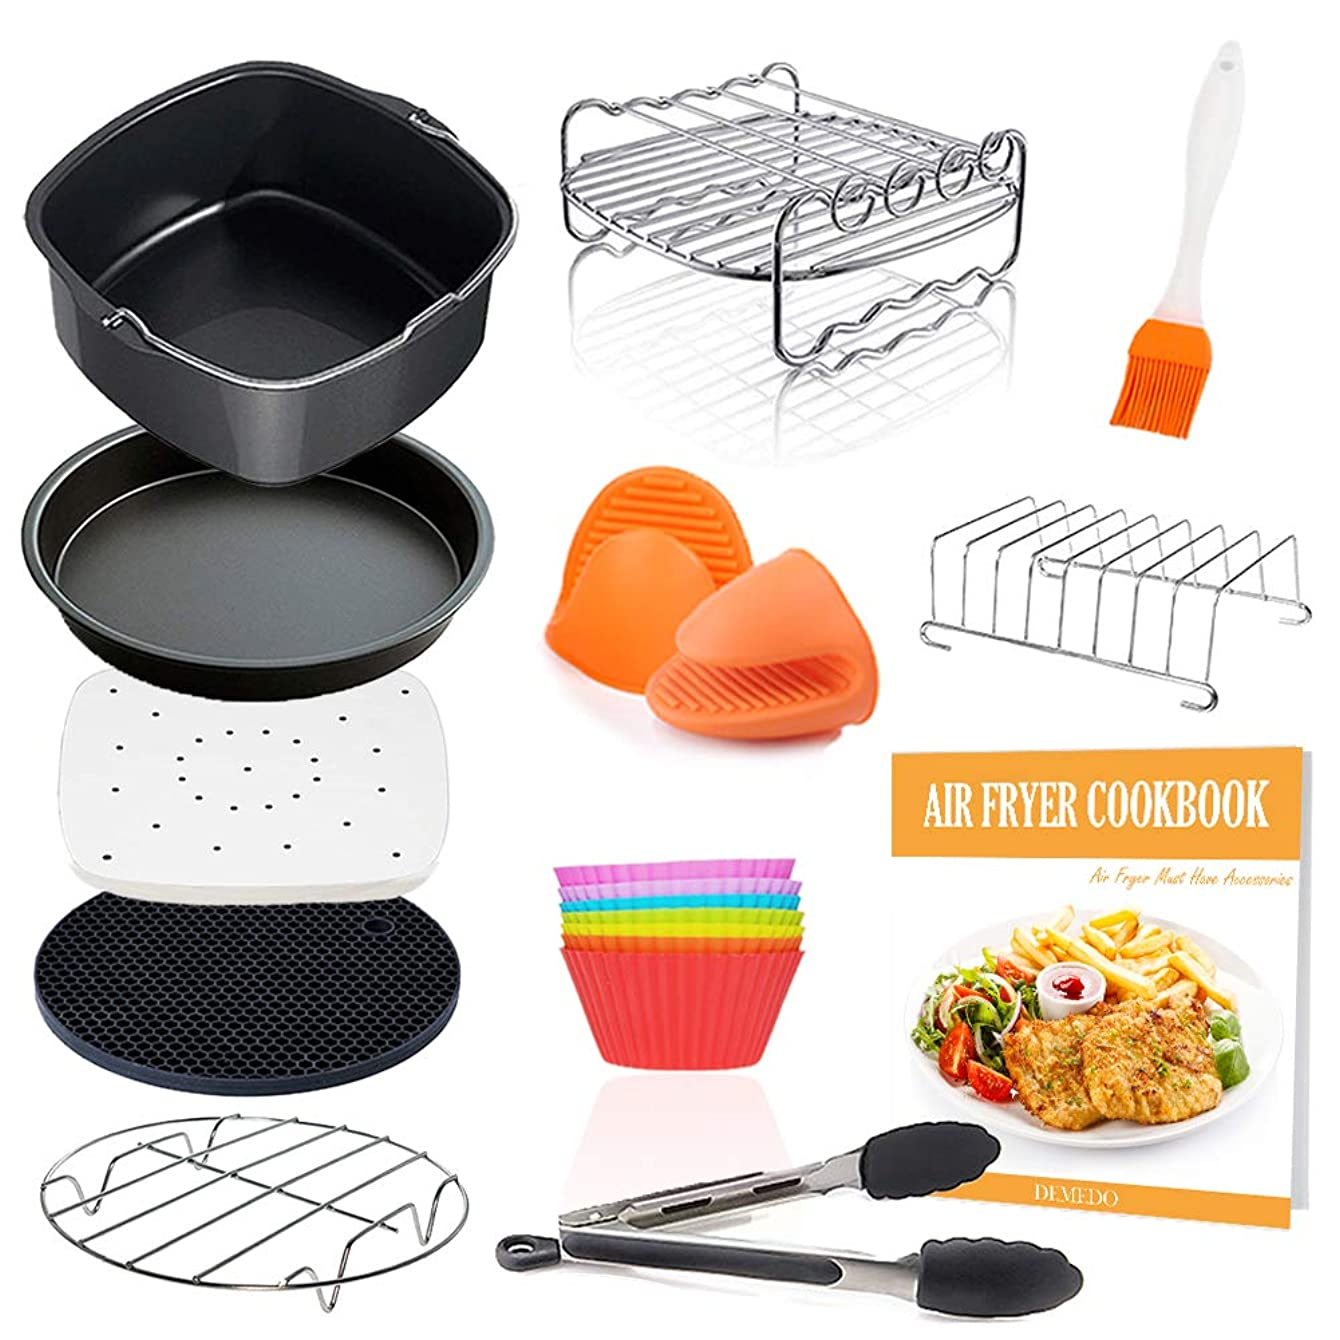 Square Air Fryer Accessories 11 pcs with Recipe Cookbook Compatible for Philips, COSORI, NuWave Brio and other Square AirFryers and Oven, Deluxe Deep Fryer Accessories Set of 12 qghyzgtvqvuku73